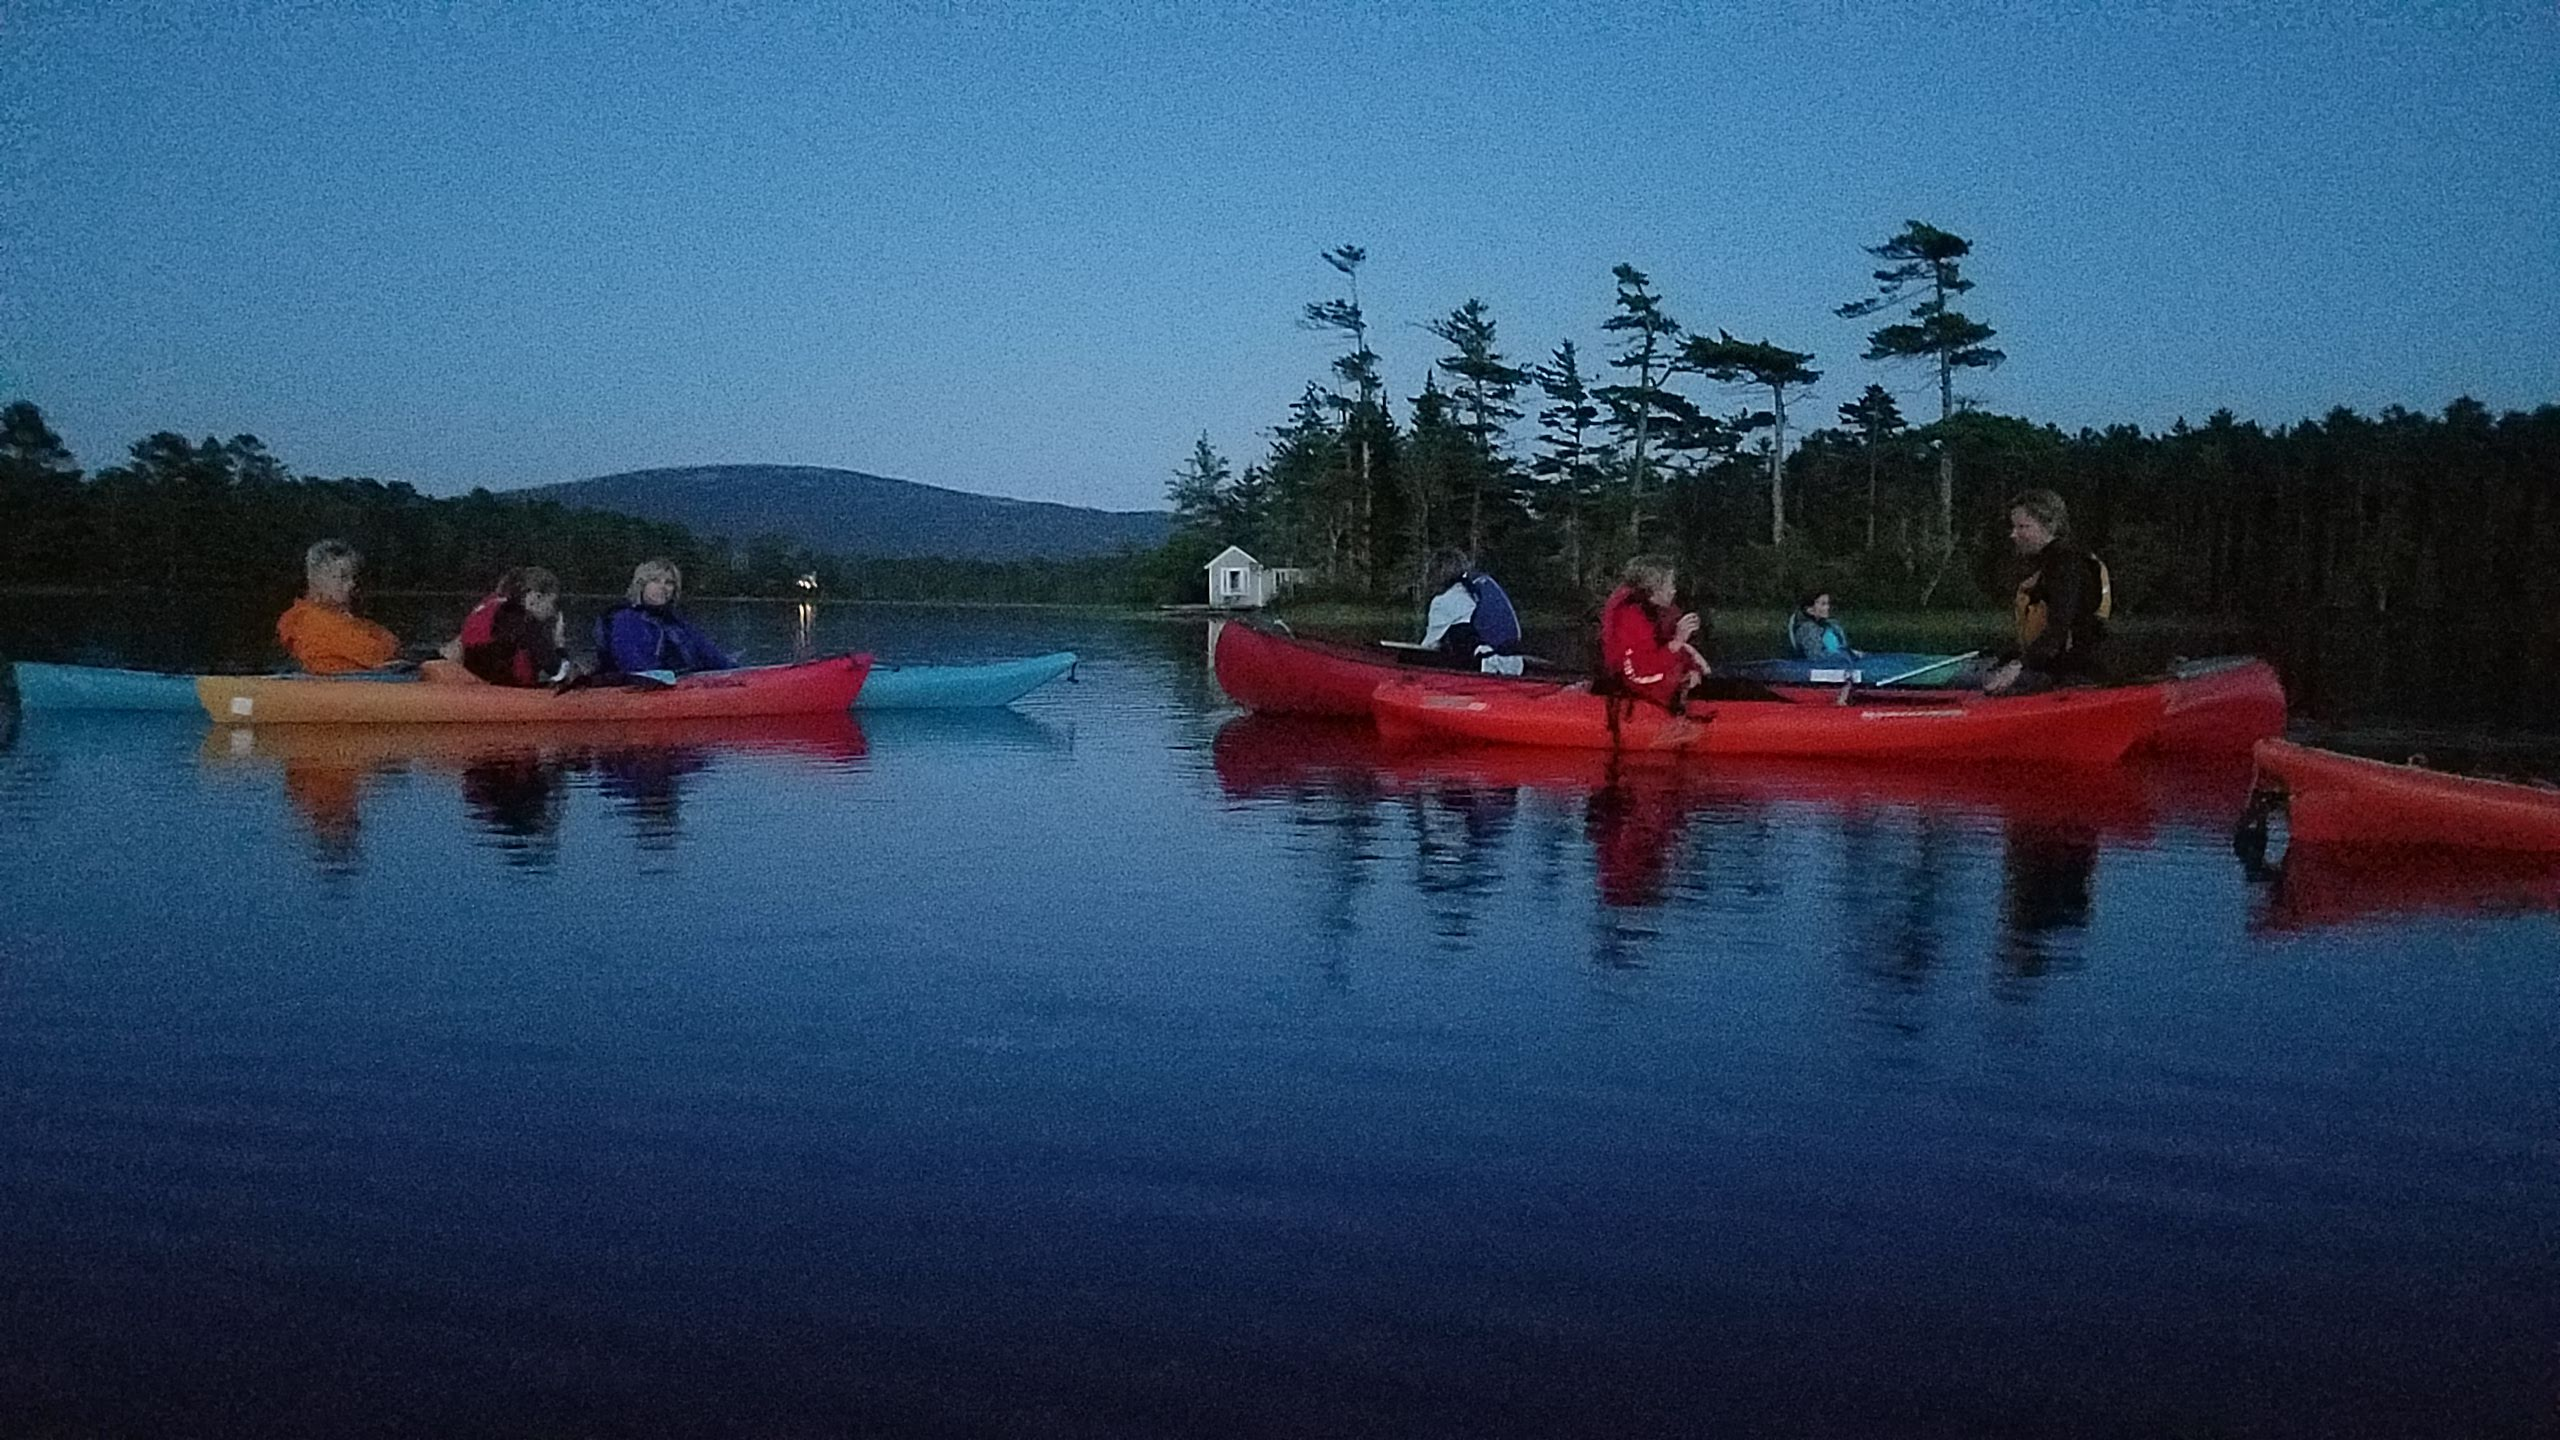 20190815_moonlight-paddle-colorful-boats-getting-dark